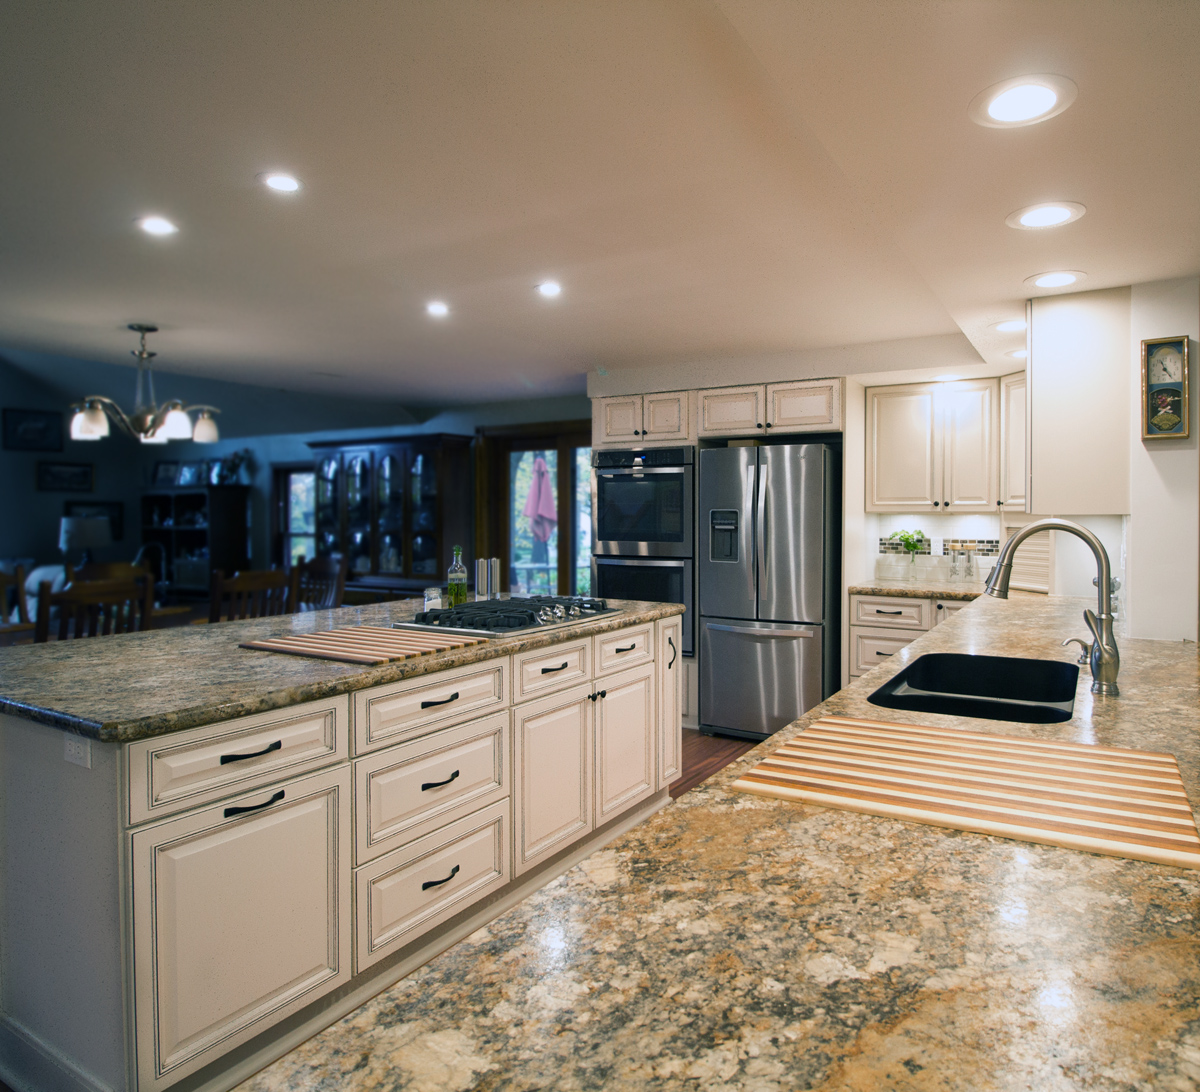 Kitchen_2_Custom_Cabinet_Island_Counter